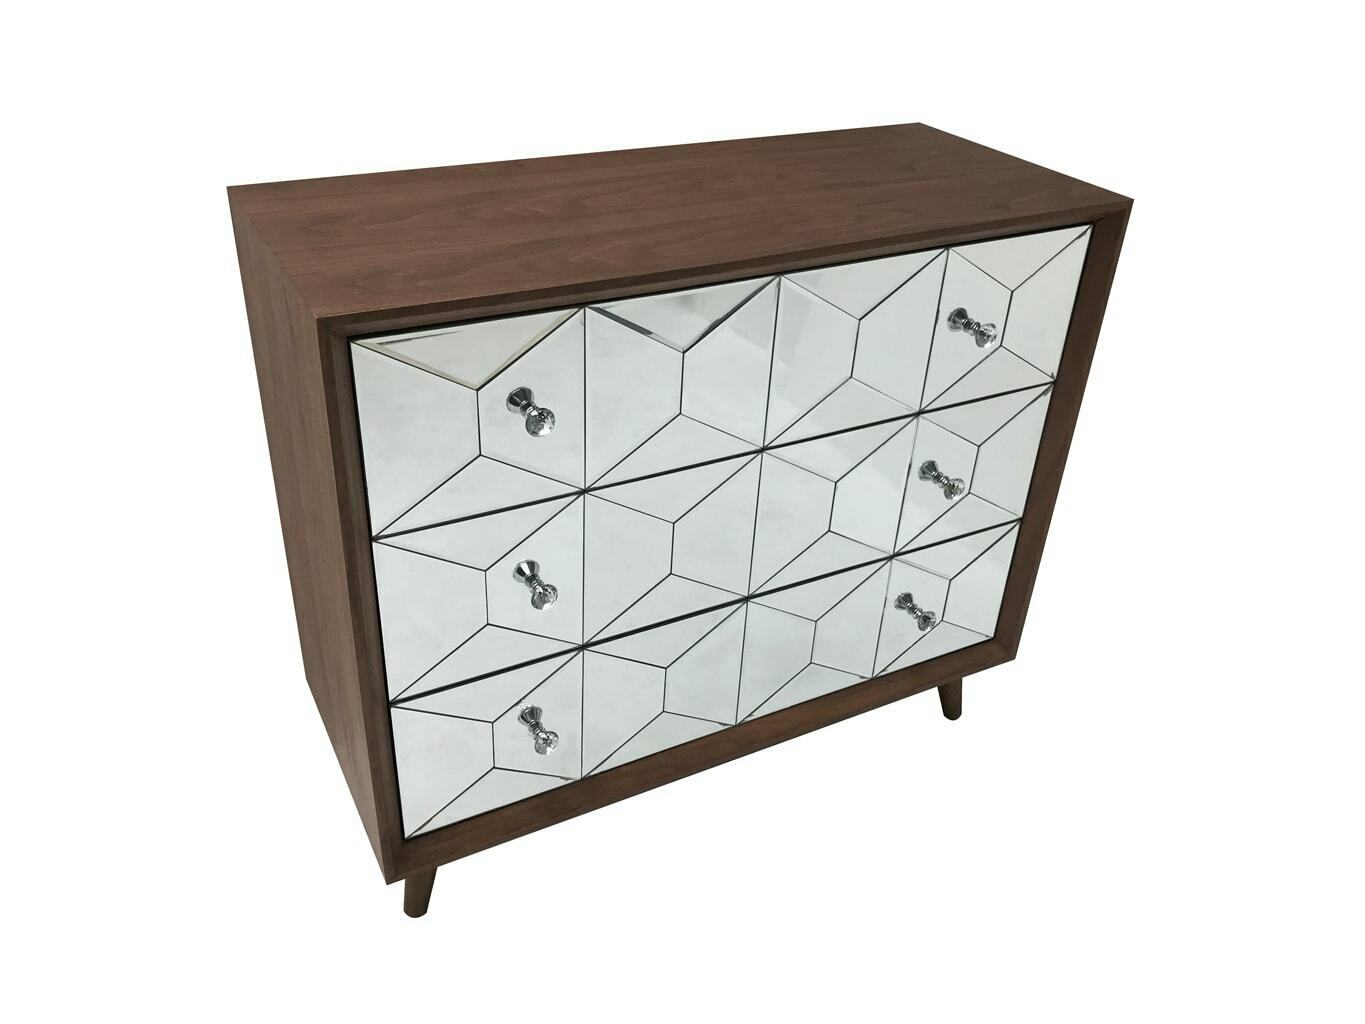 Mirrored Wood Chest 3 Drawers Retro Glass Bedroom Storage Large Deep Cabinet